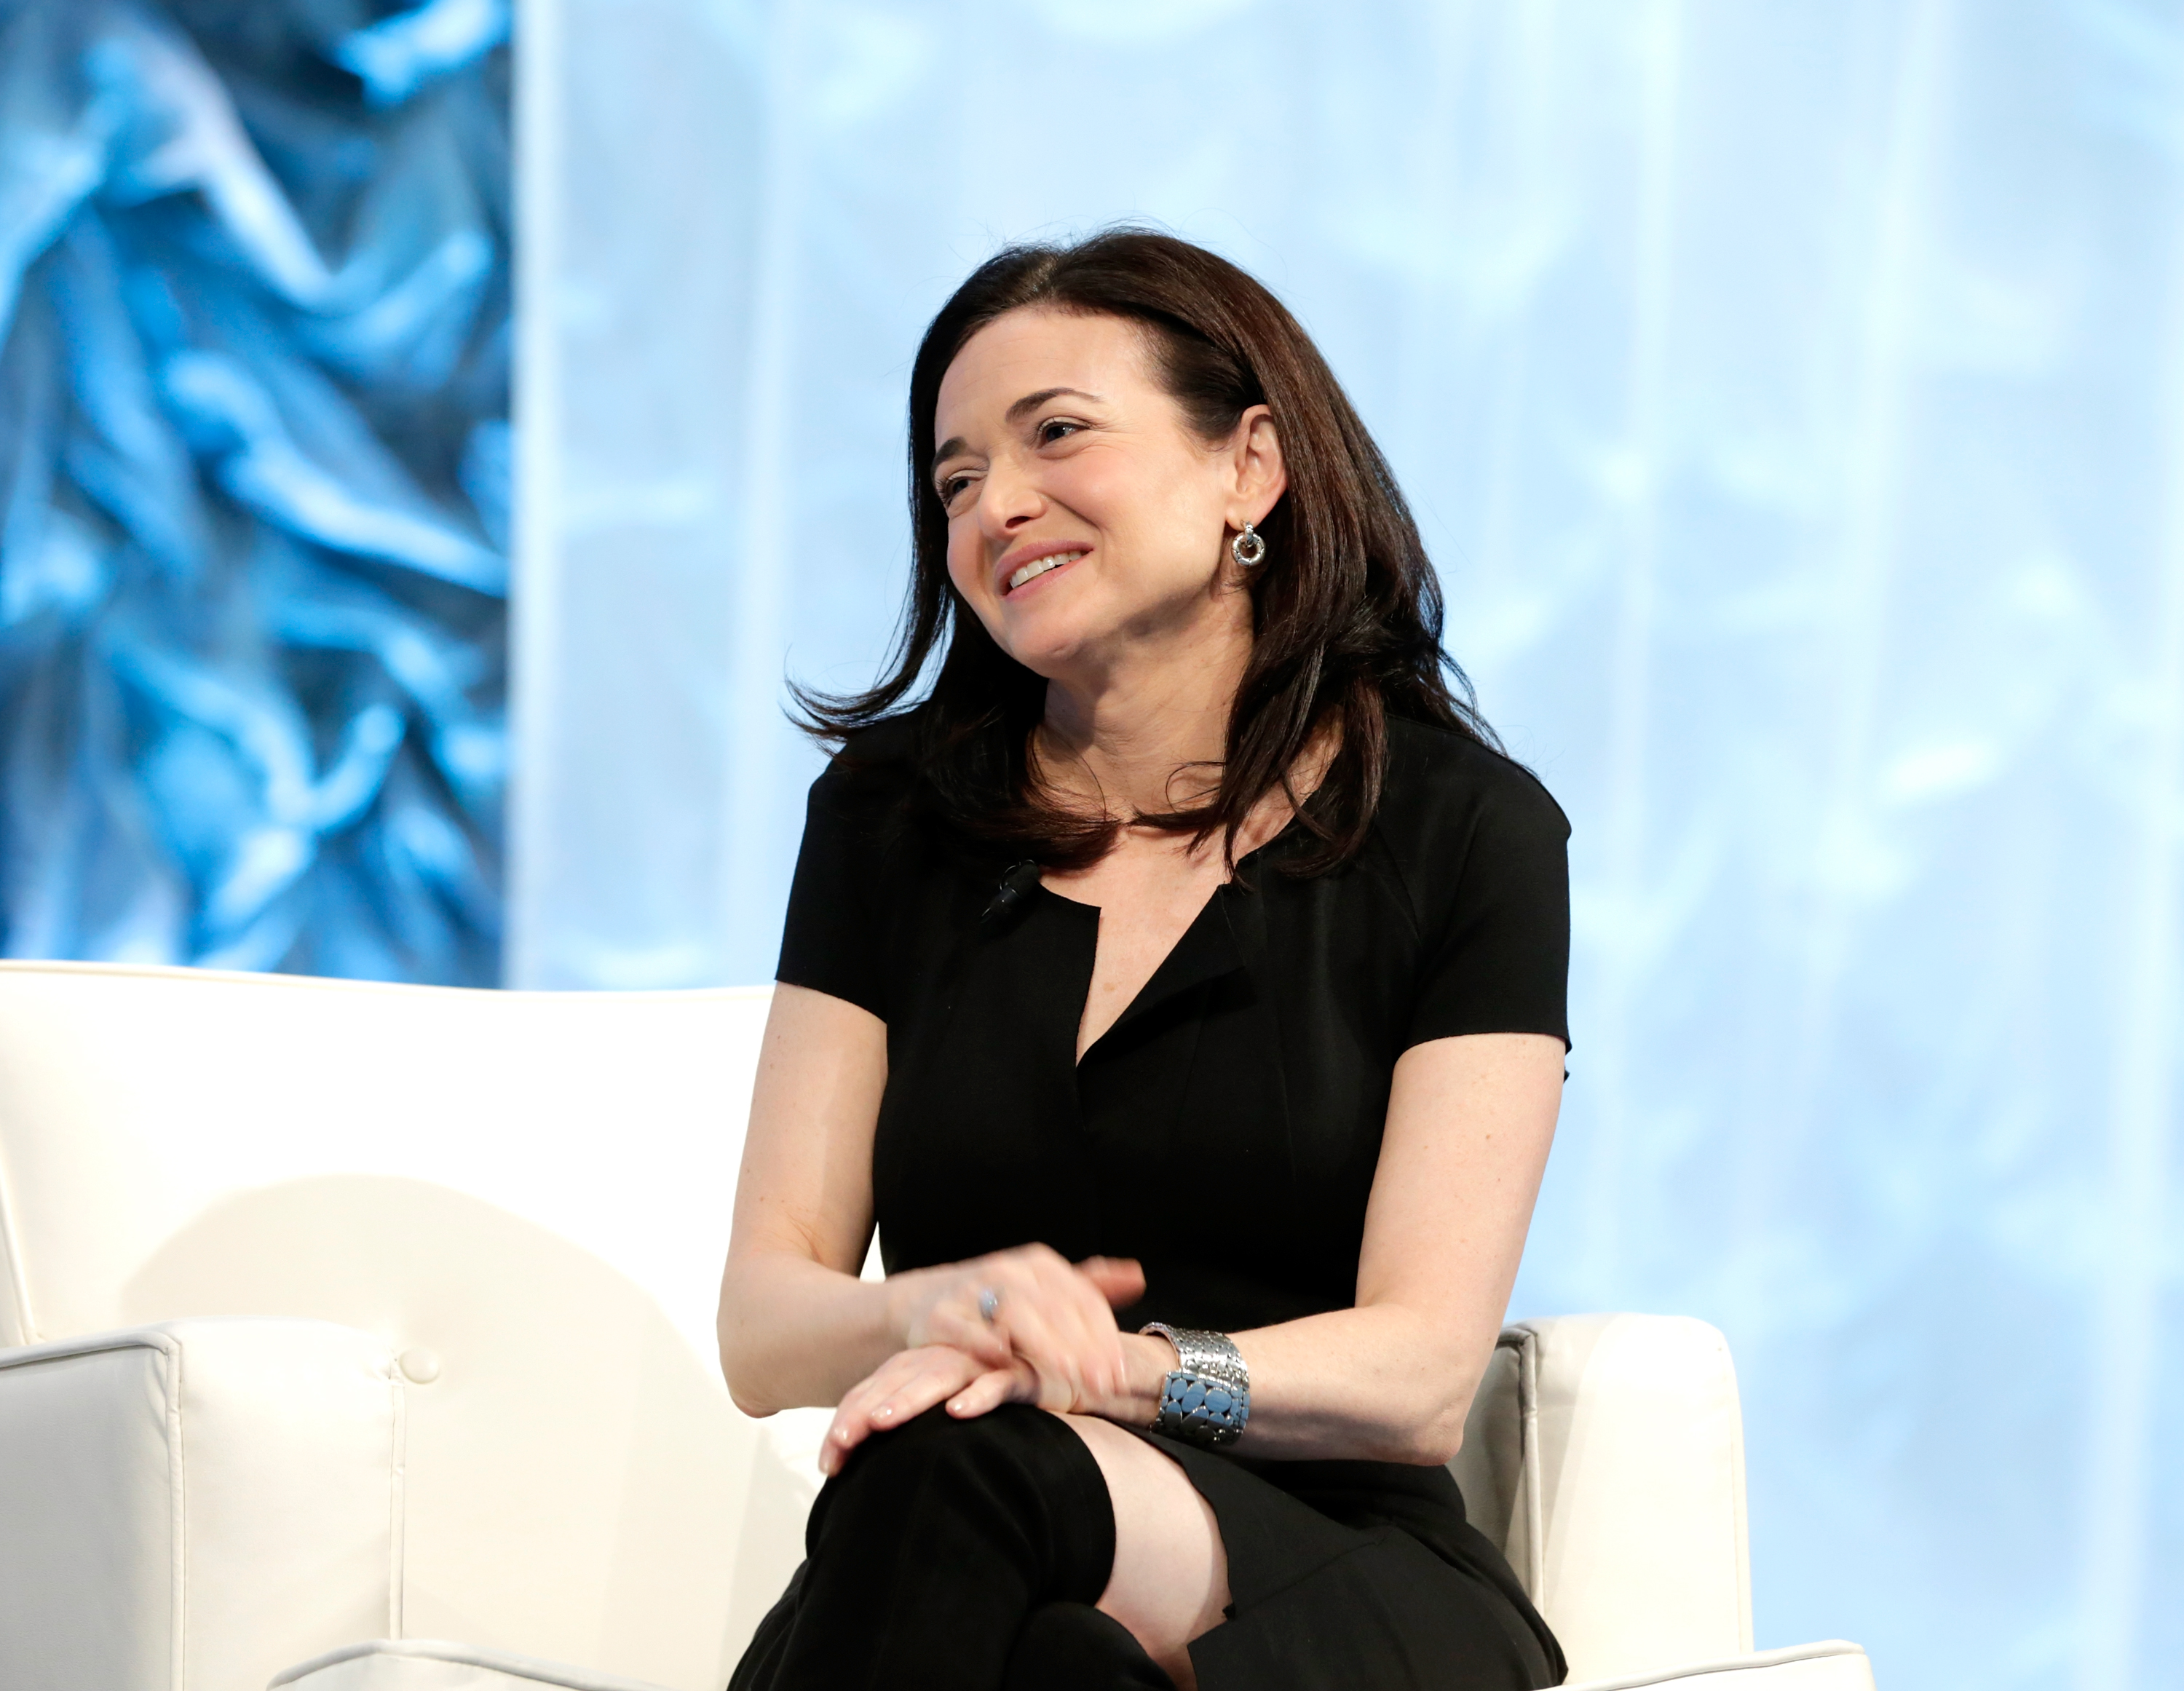 SAN JOSE, CA - FEBRUARY 01:  COO of Facebook Sheryl Sandberg speaks at the Watermark Conference for Women at San Jose Convention Center on February 1, 2017 in San Jose, California.  (Photo by Marla Aufmuth/Getty Images for Watermark Conference for Women  )